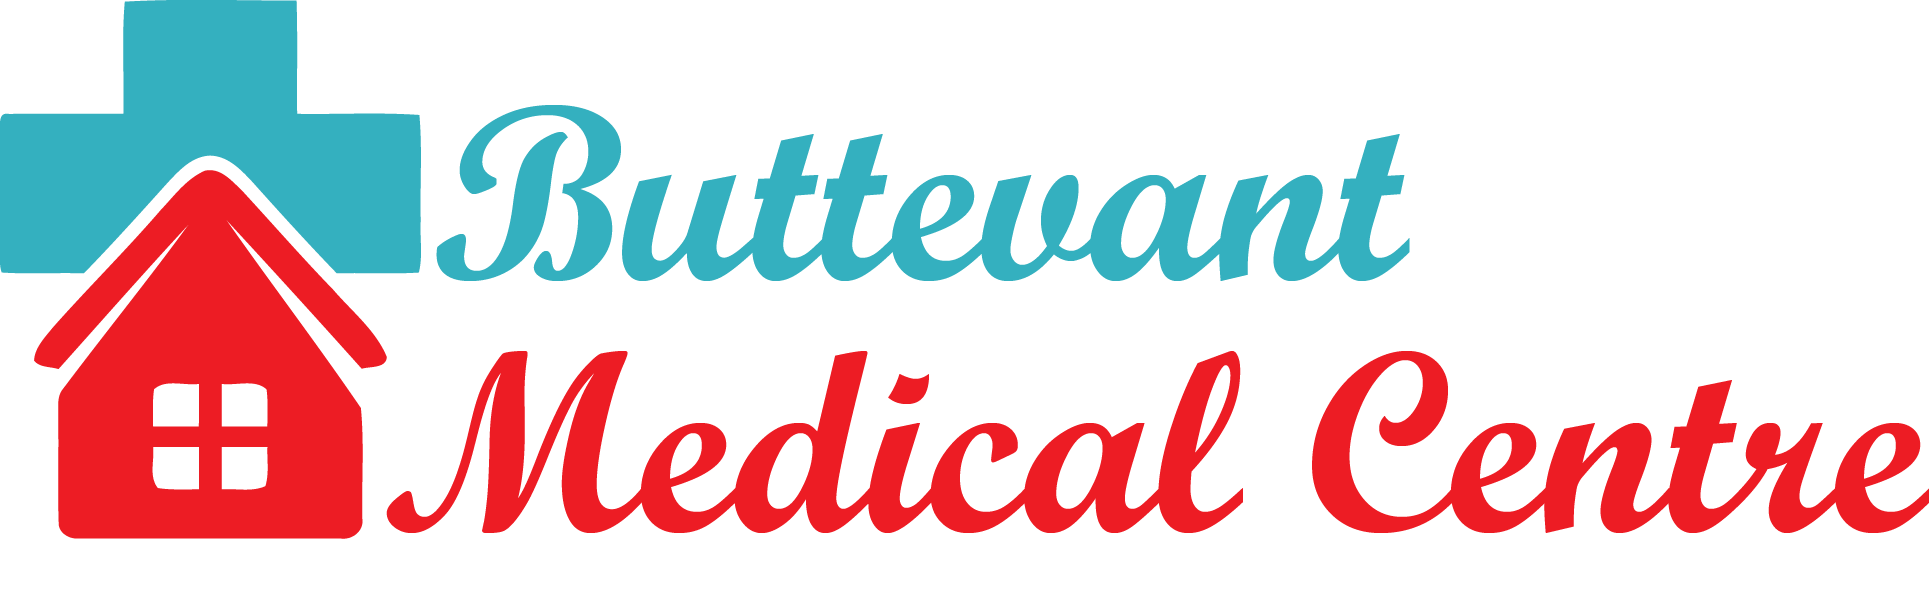 Buttevant Medical Centre Logo